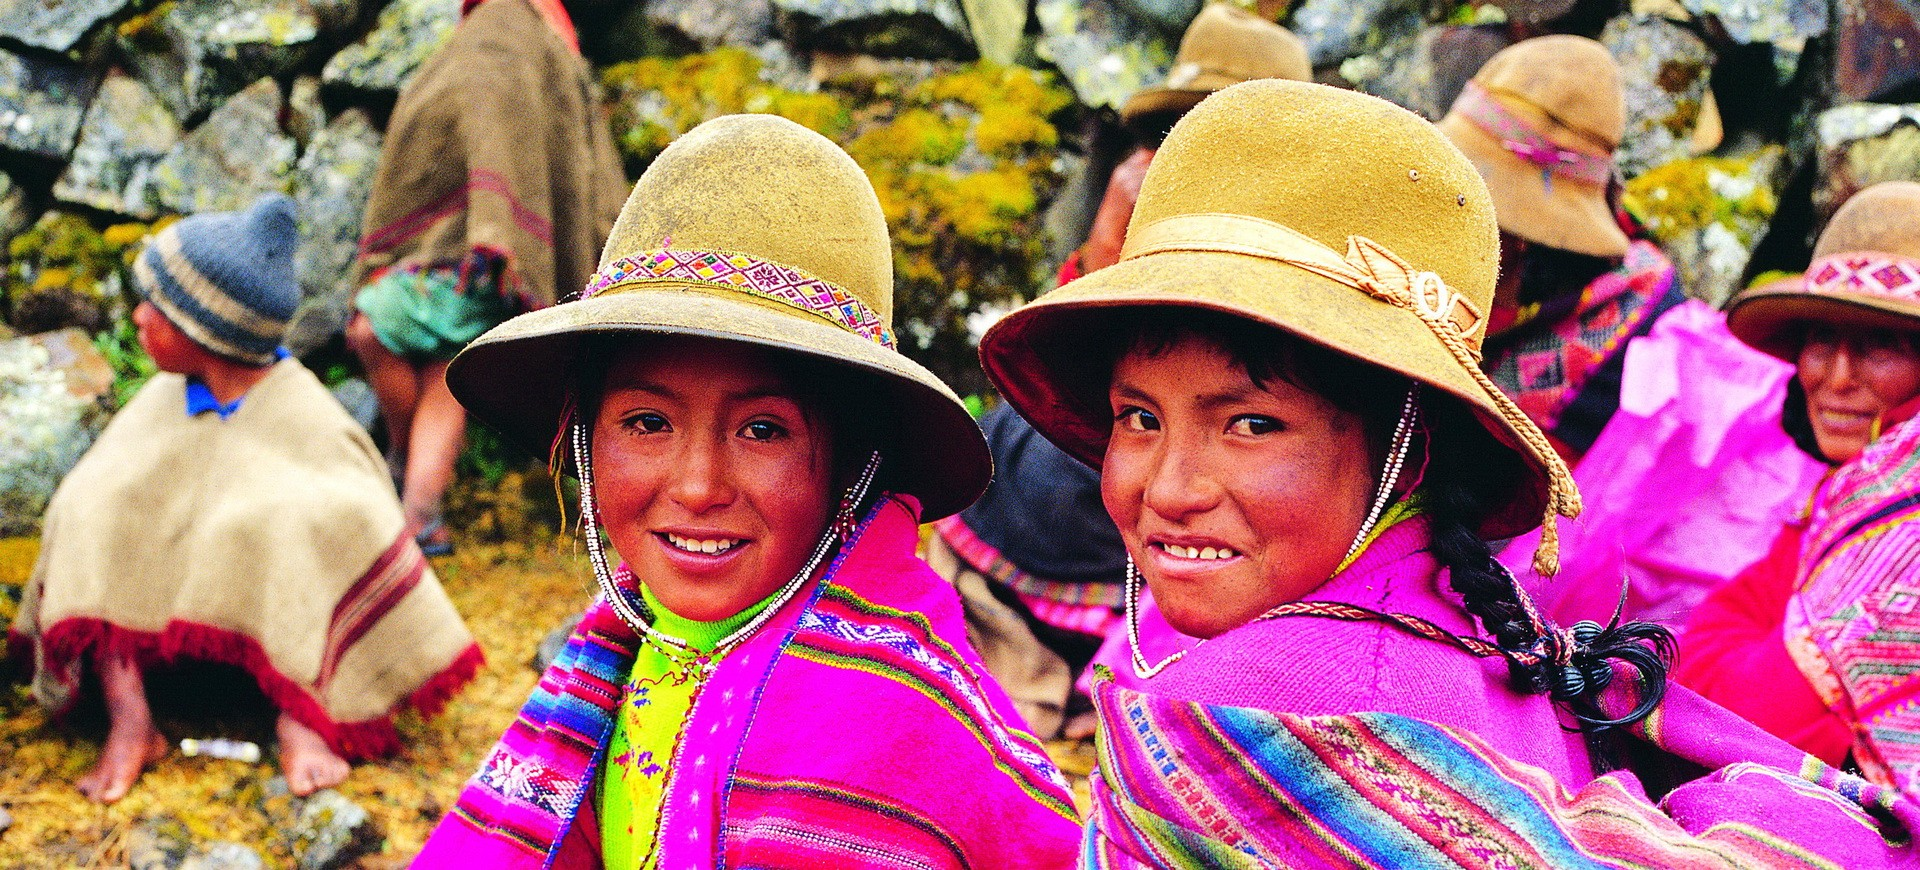 Pérou Cuzco Enfants en habits traditionnels